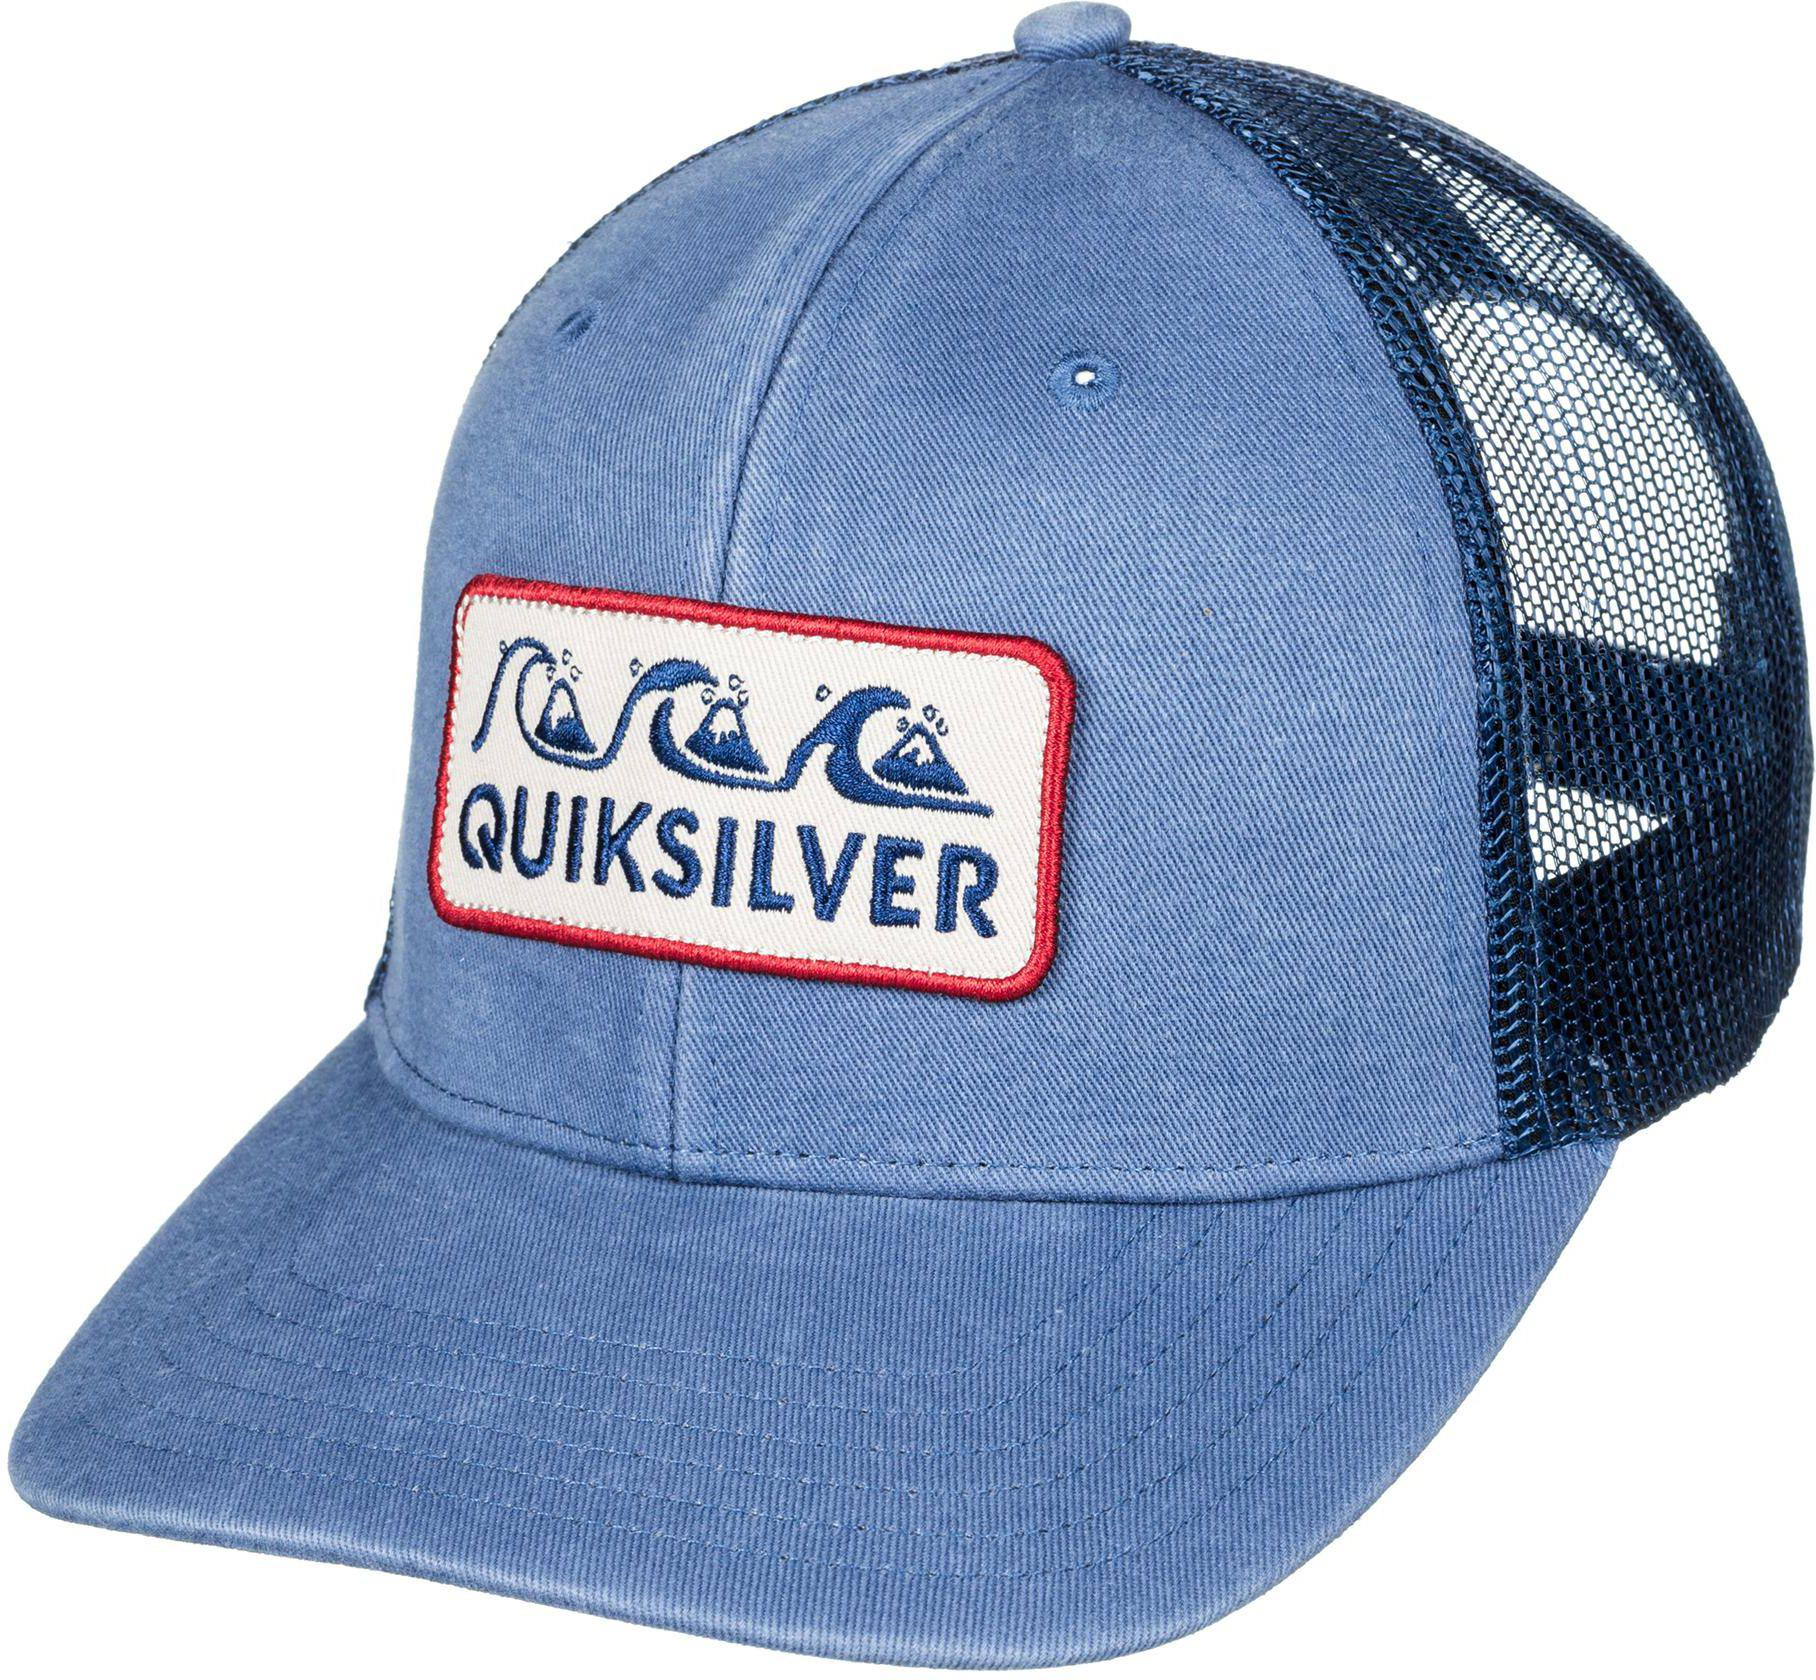 Lyst - Quiksilver Wharf Beater Trucker Hat in Blue for Men d08e82f3d78